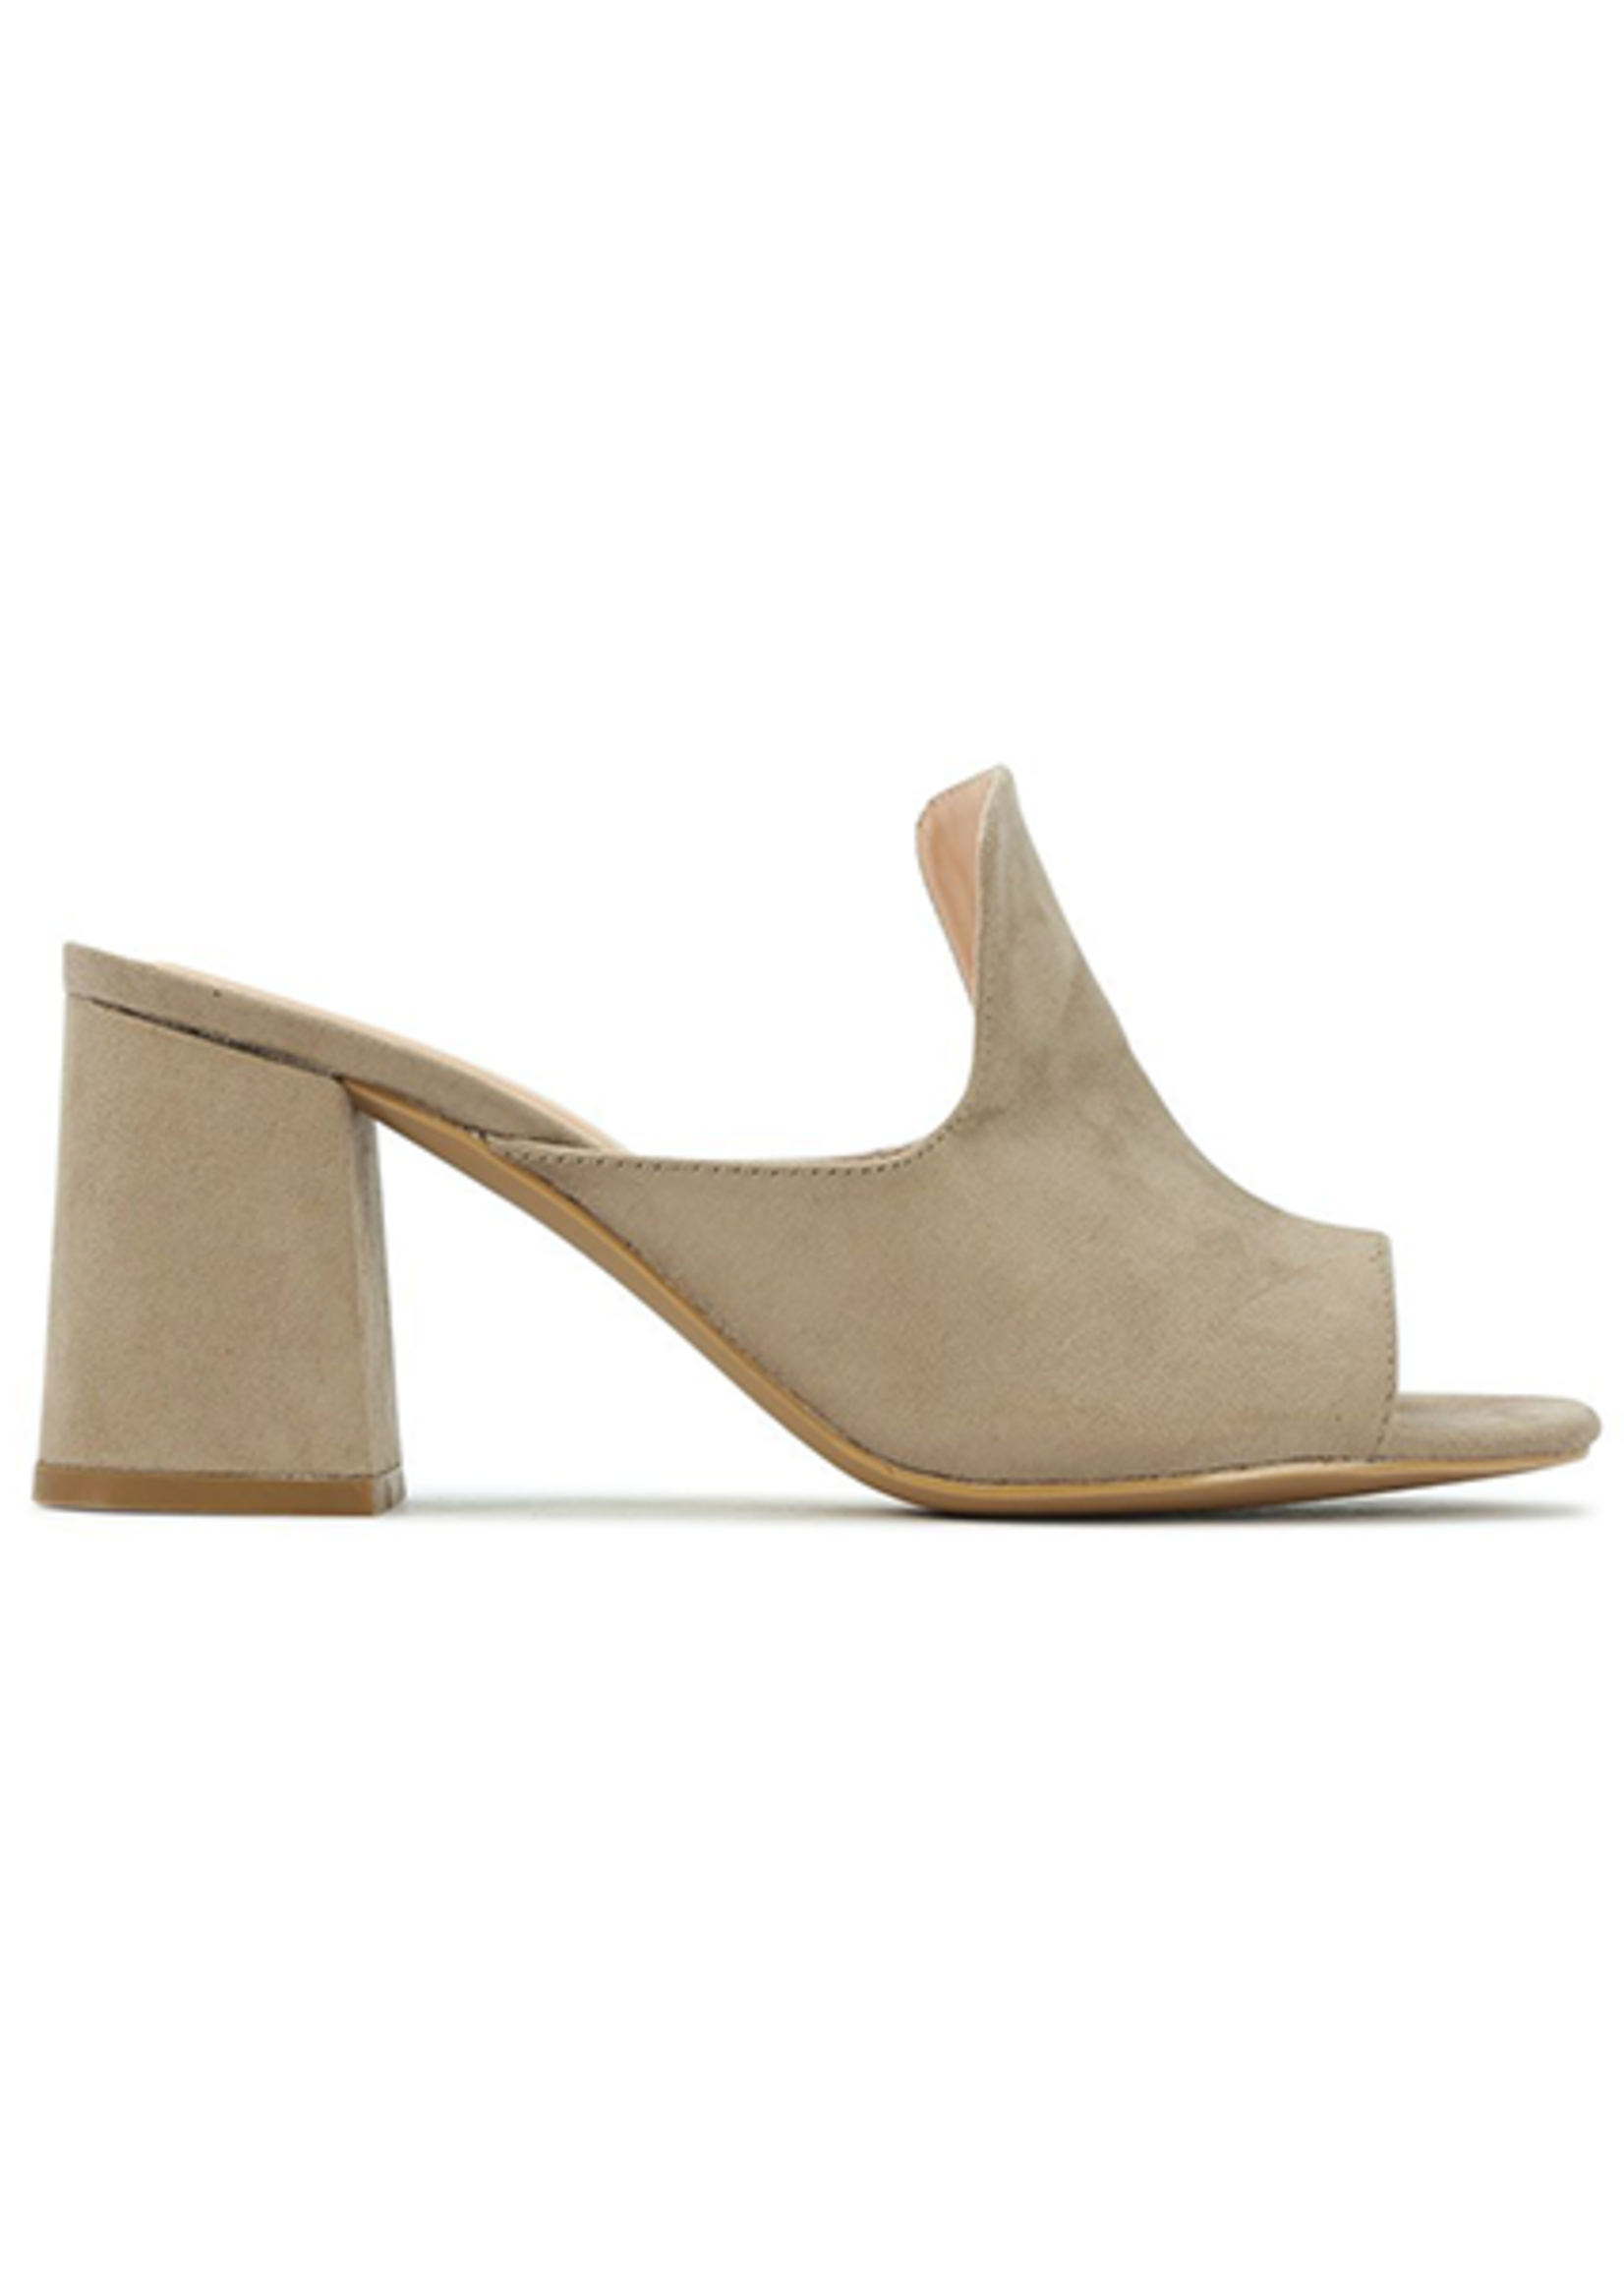 Los Cabos Lorde Taupe